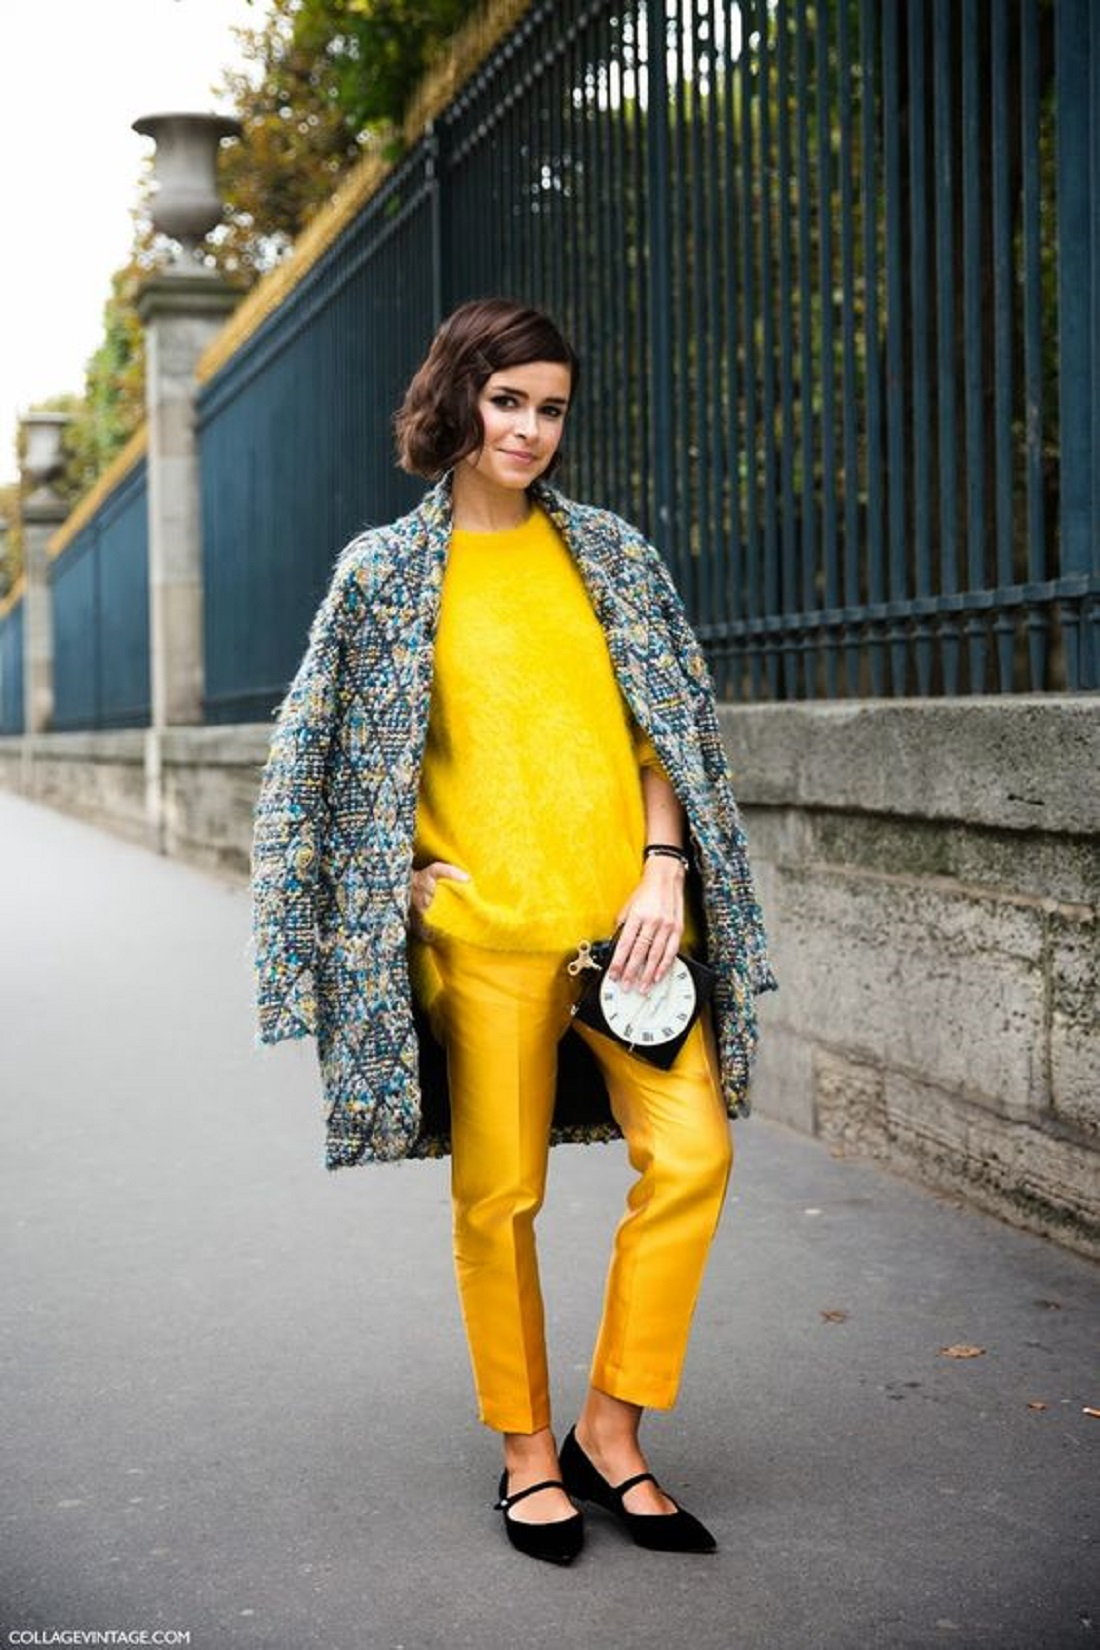 @projectfairytale: 15 Yellow outfits to transition into fall